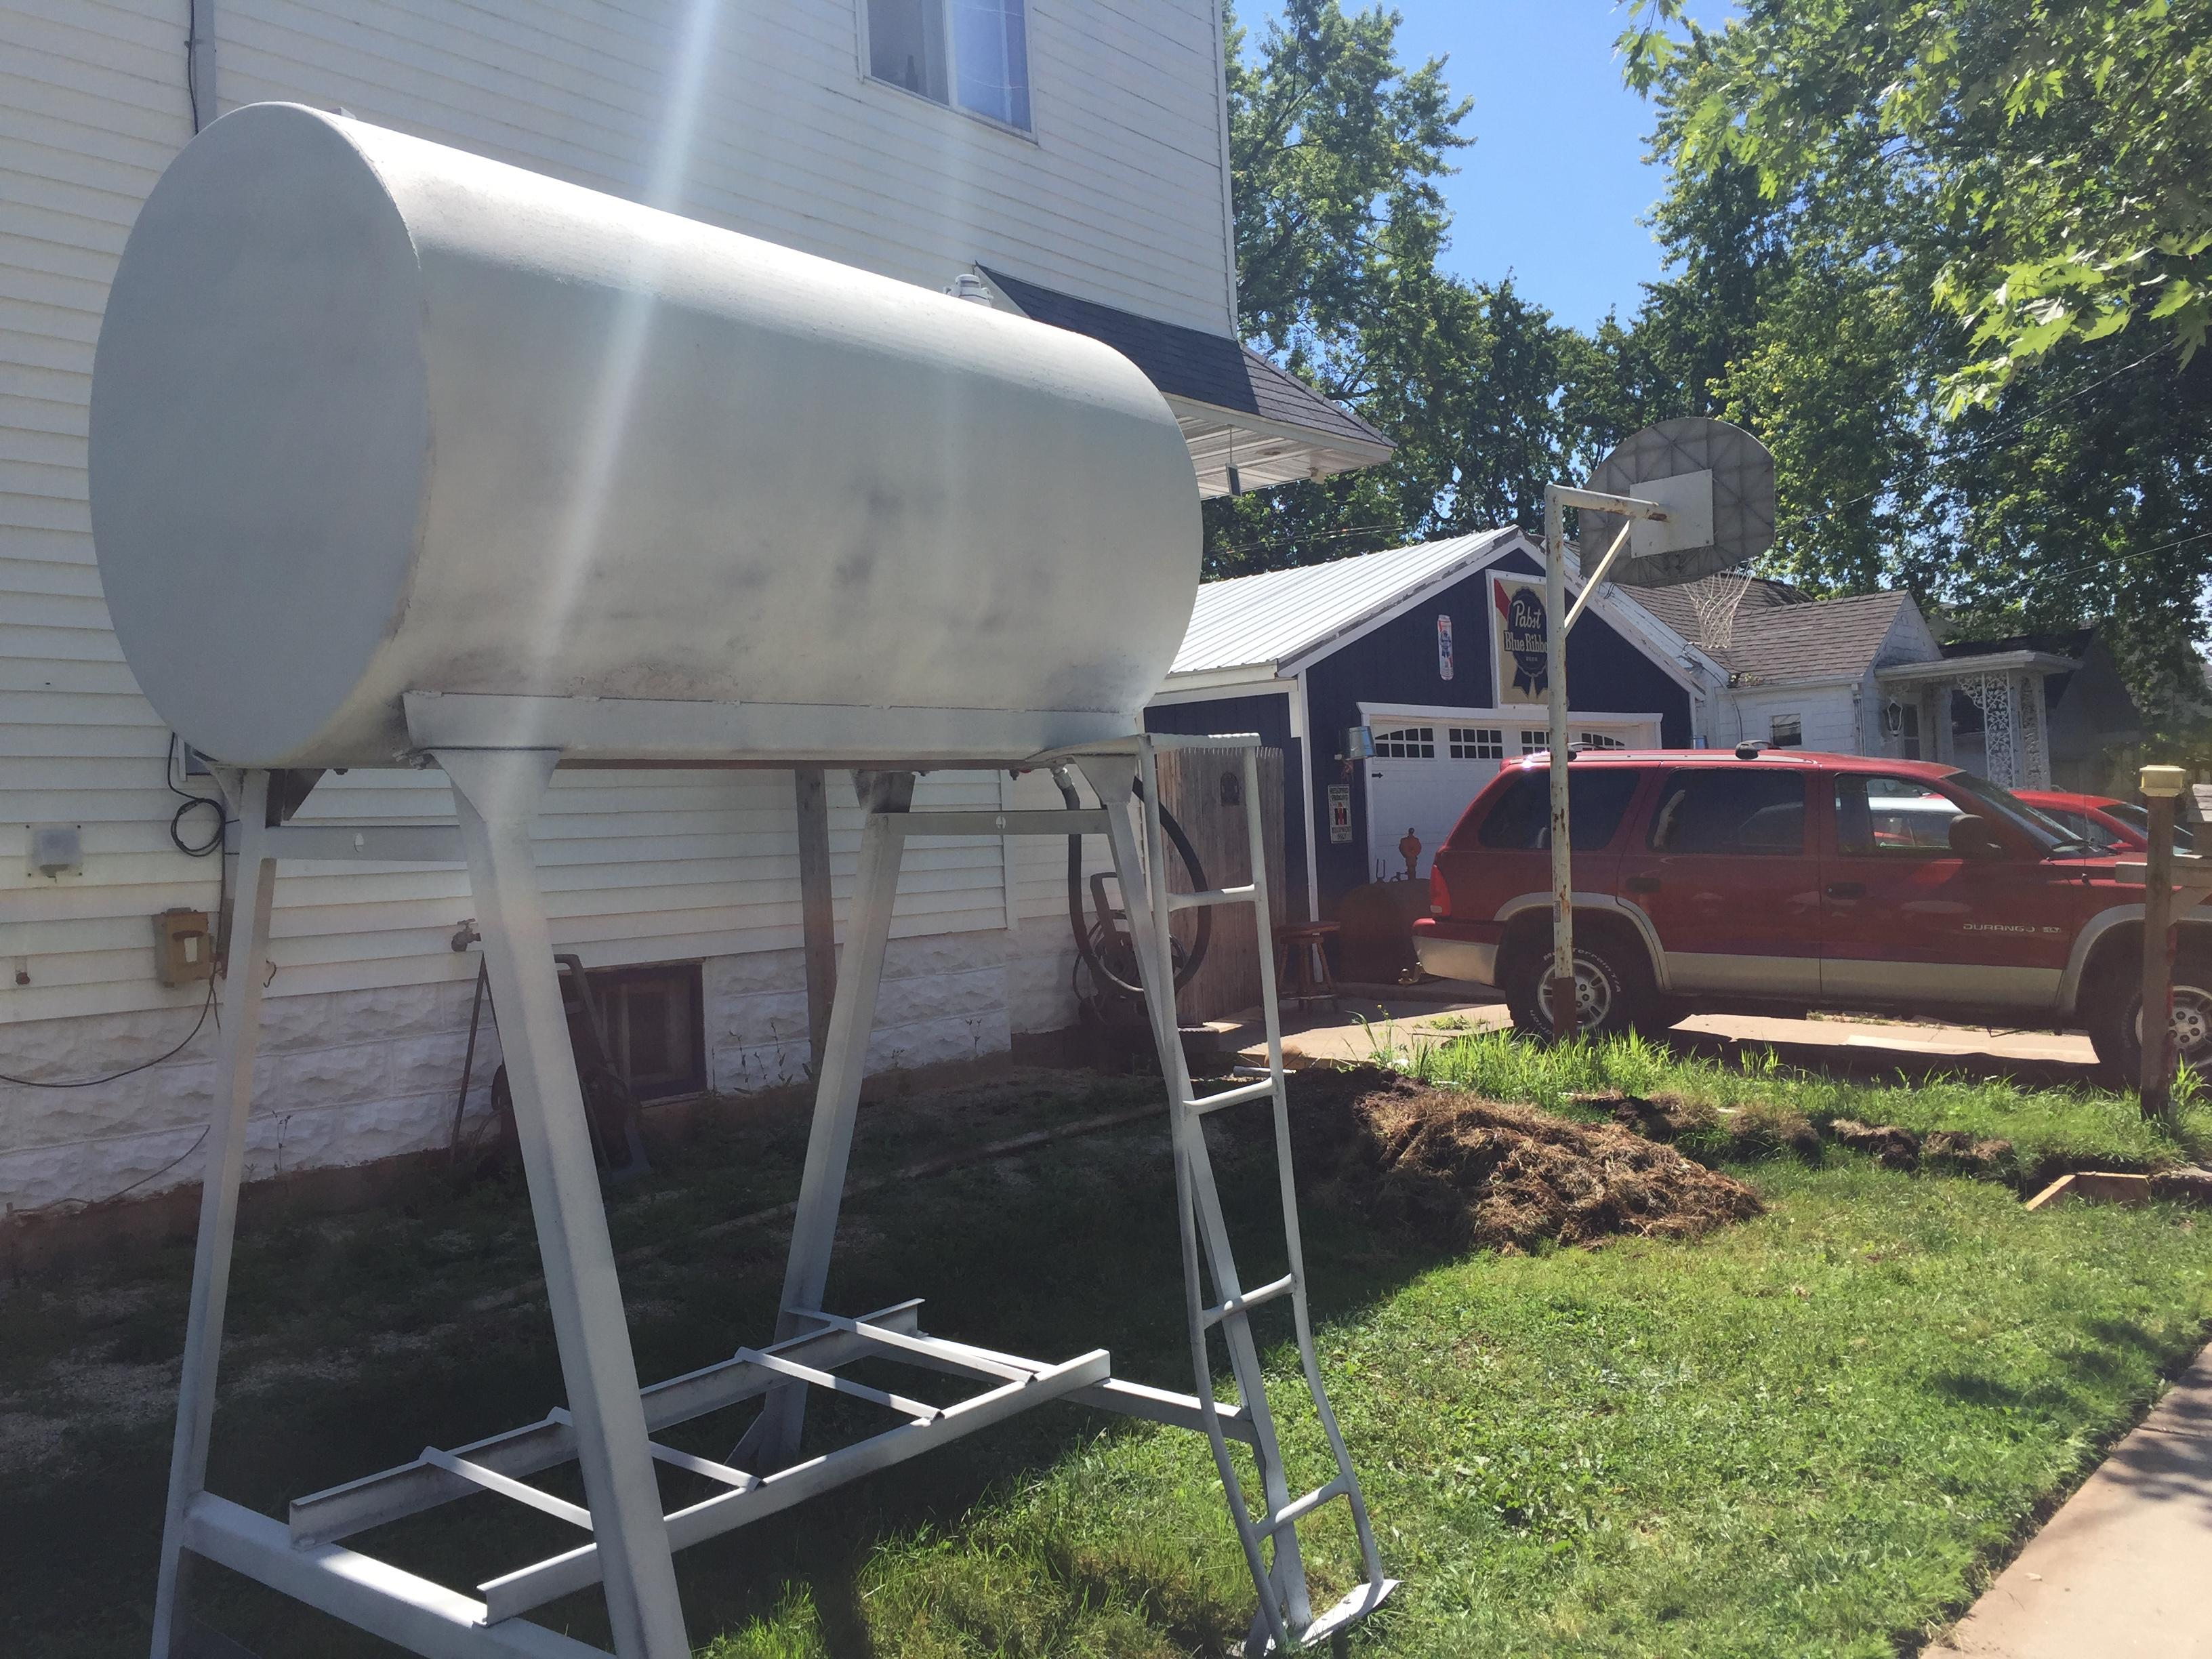 Officials from the City of Kaukauna say the side of the house follows front yard code because it is a corner lot. August 7, 2017 (WLUK/Pafoua Yang)